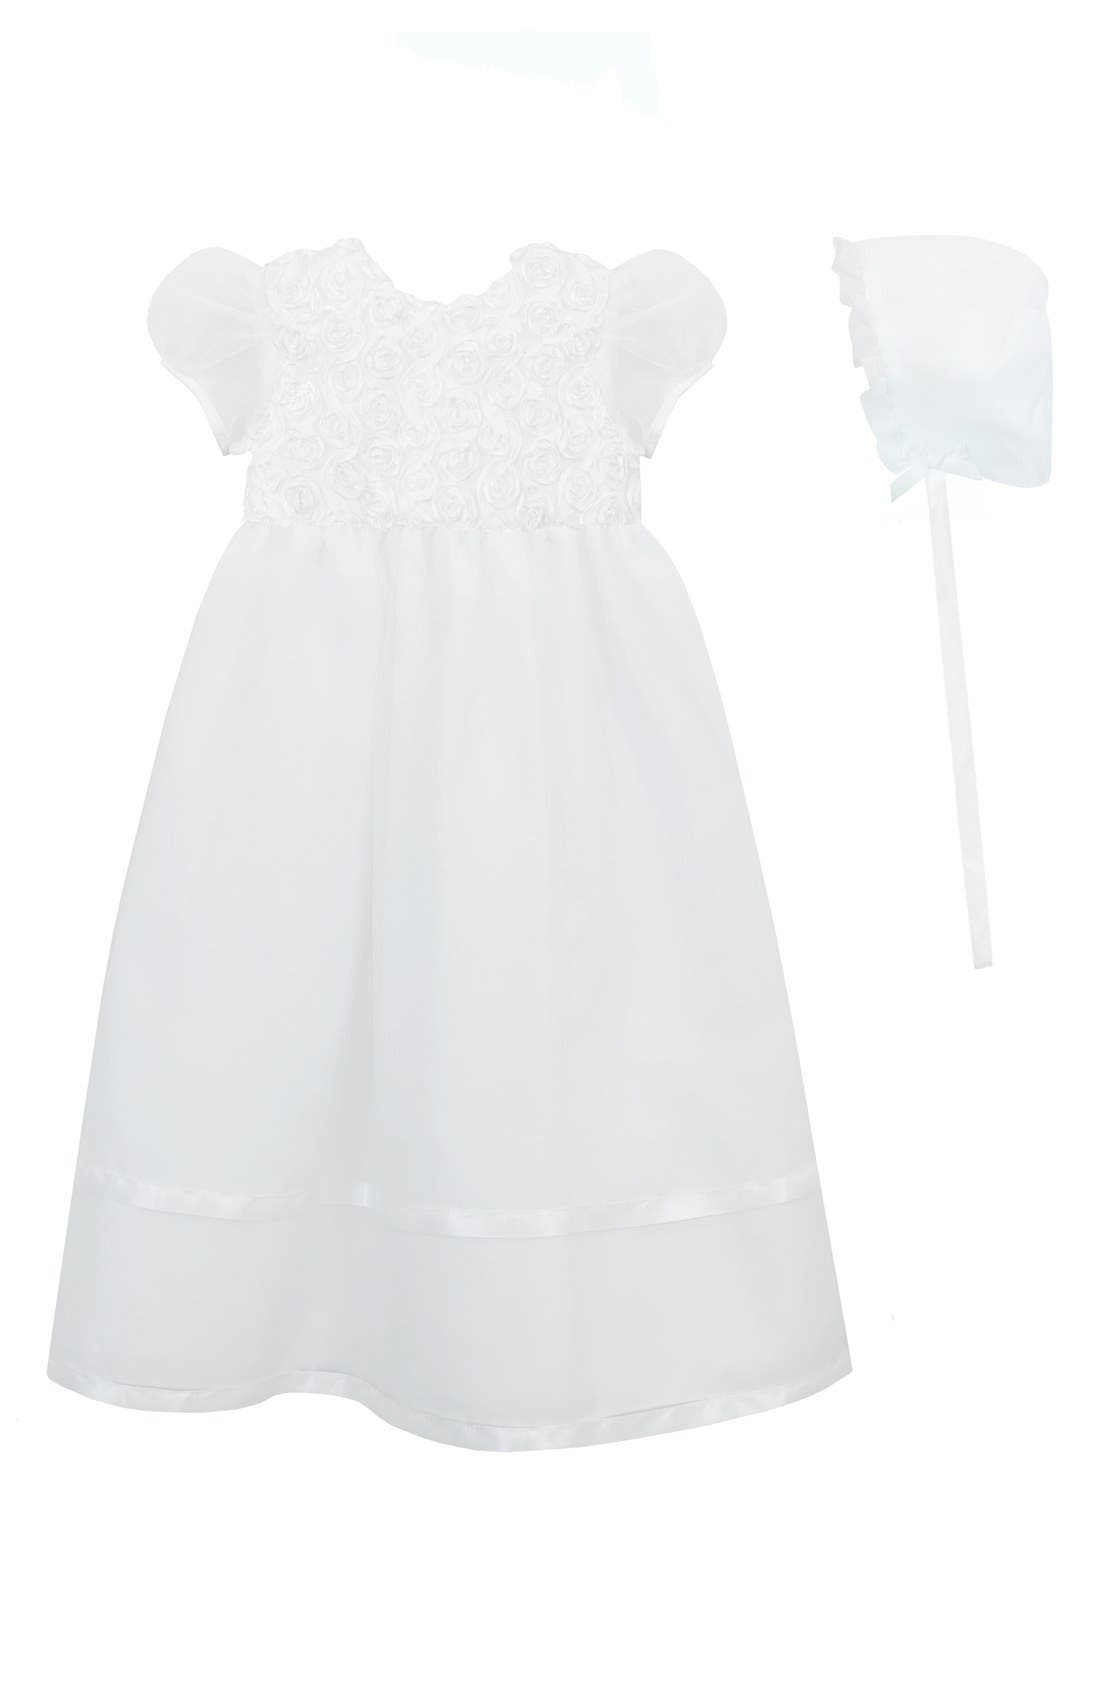 Infant C.i. Castro & Co. Christening Gown & Bonnet